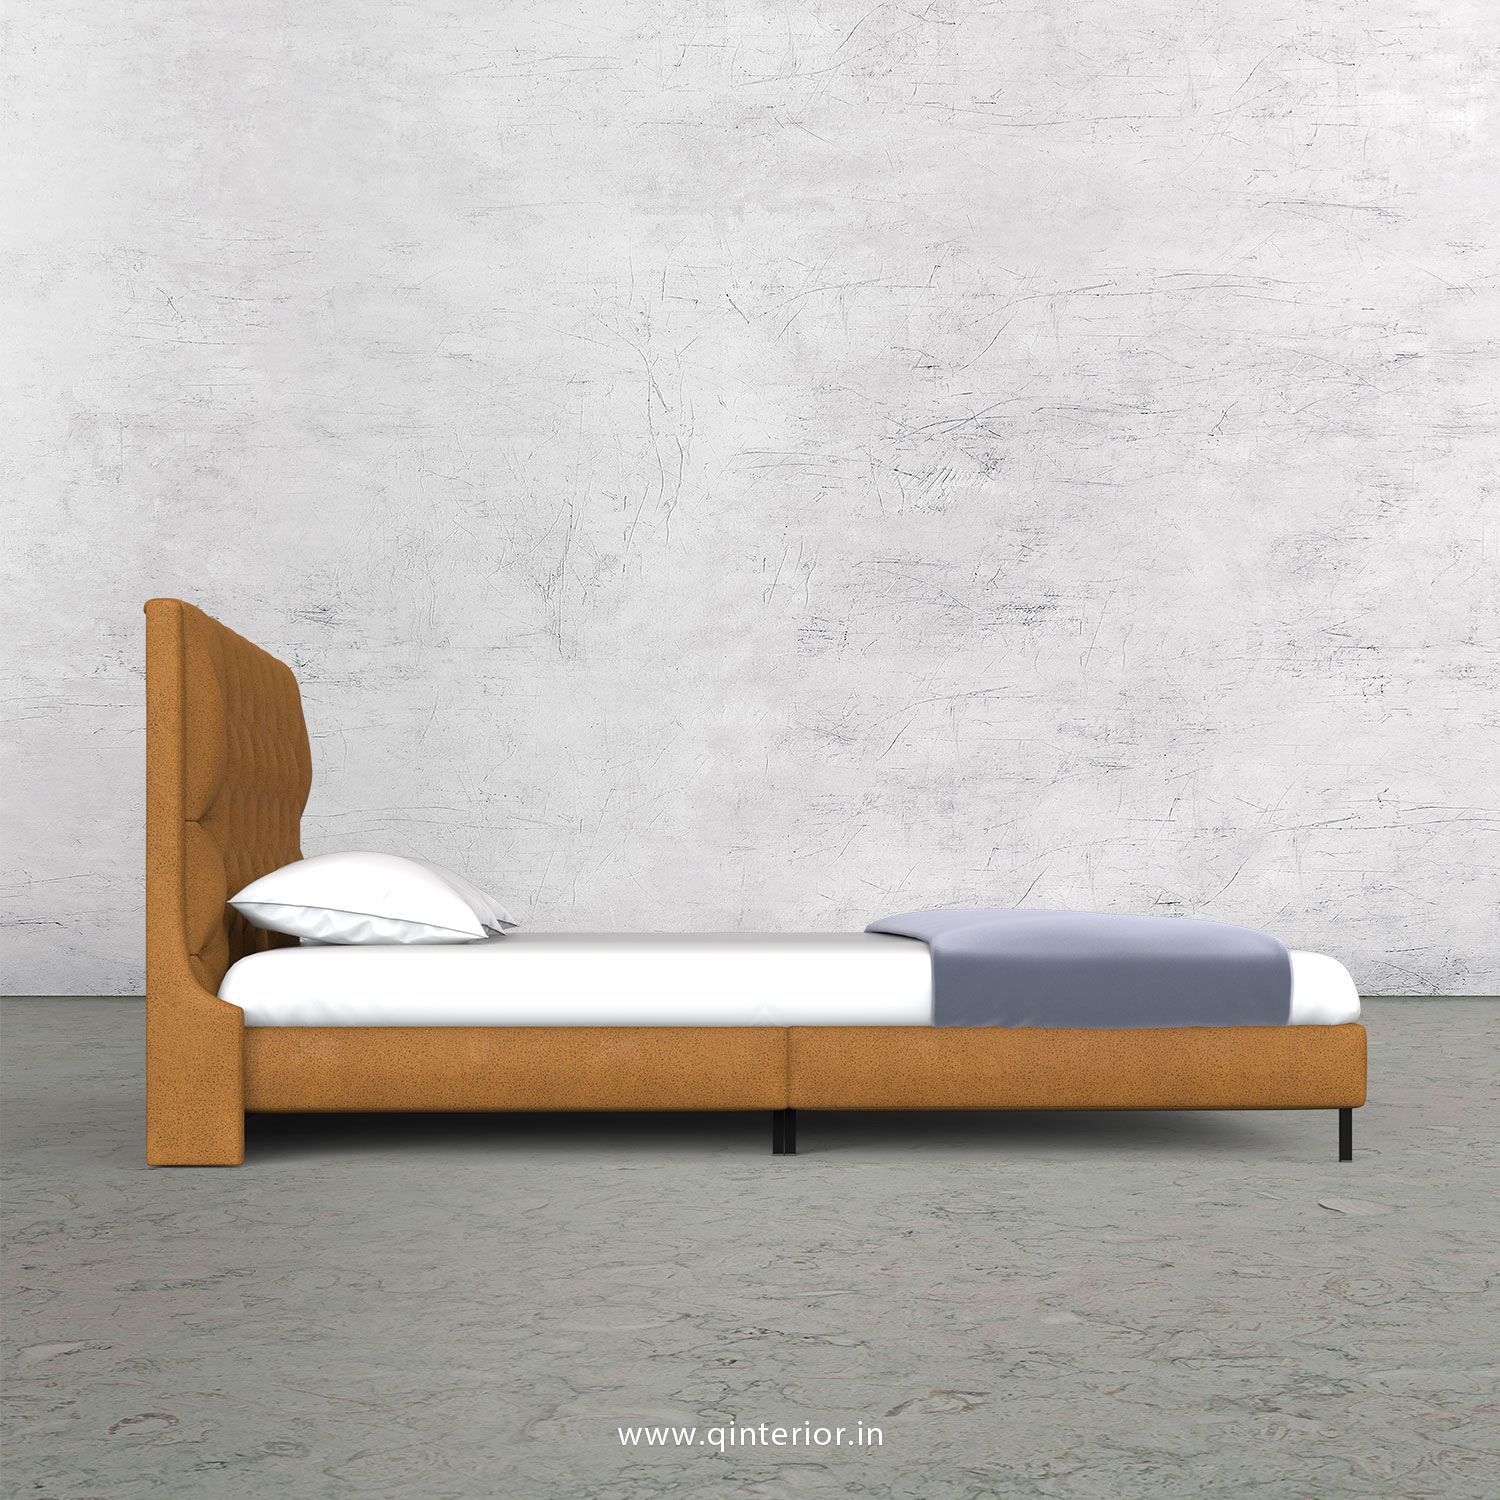 Scorpius King Size Bed in Fab Leather Fabric - KBD003 FL14